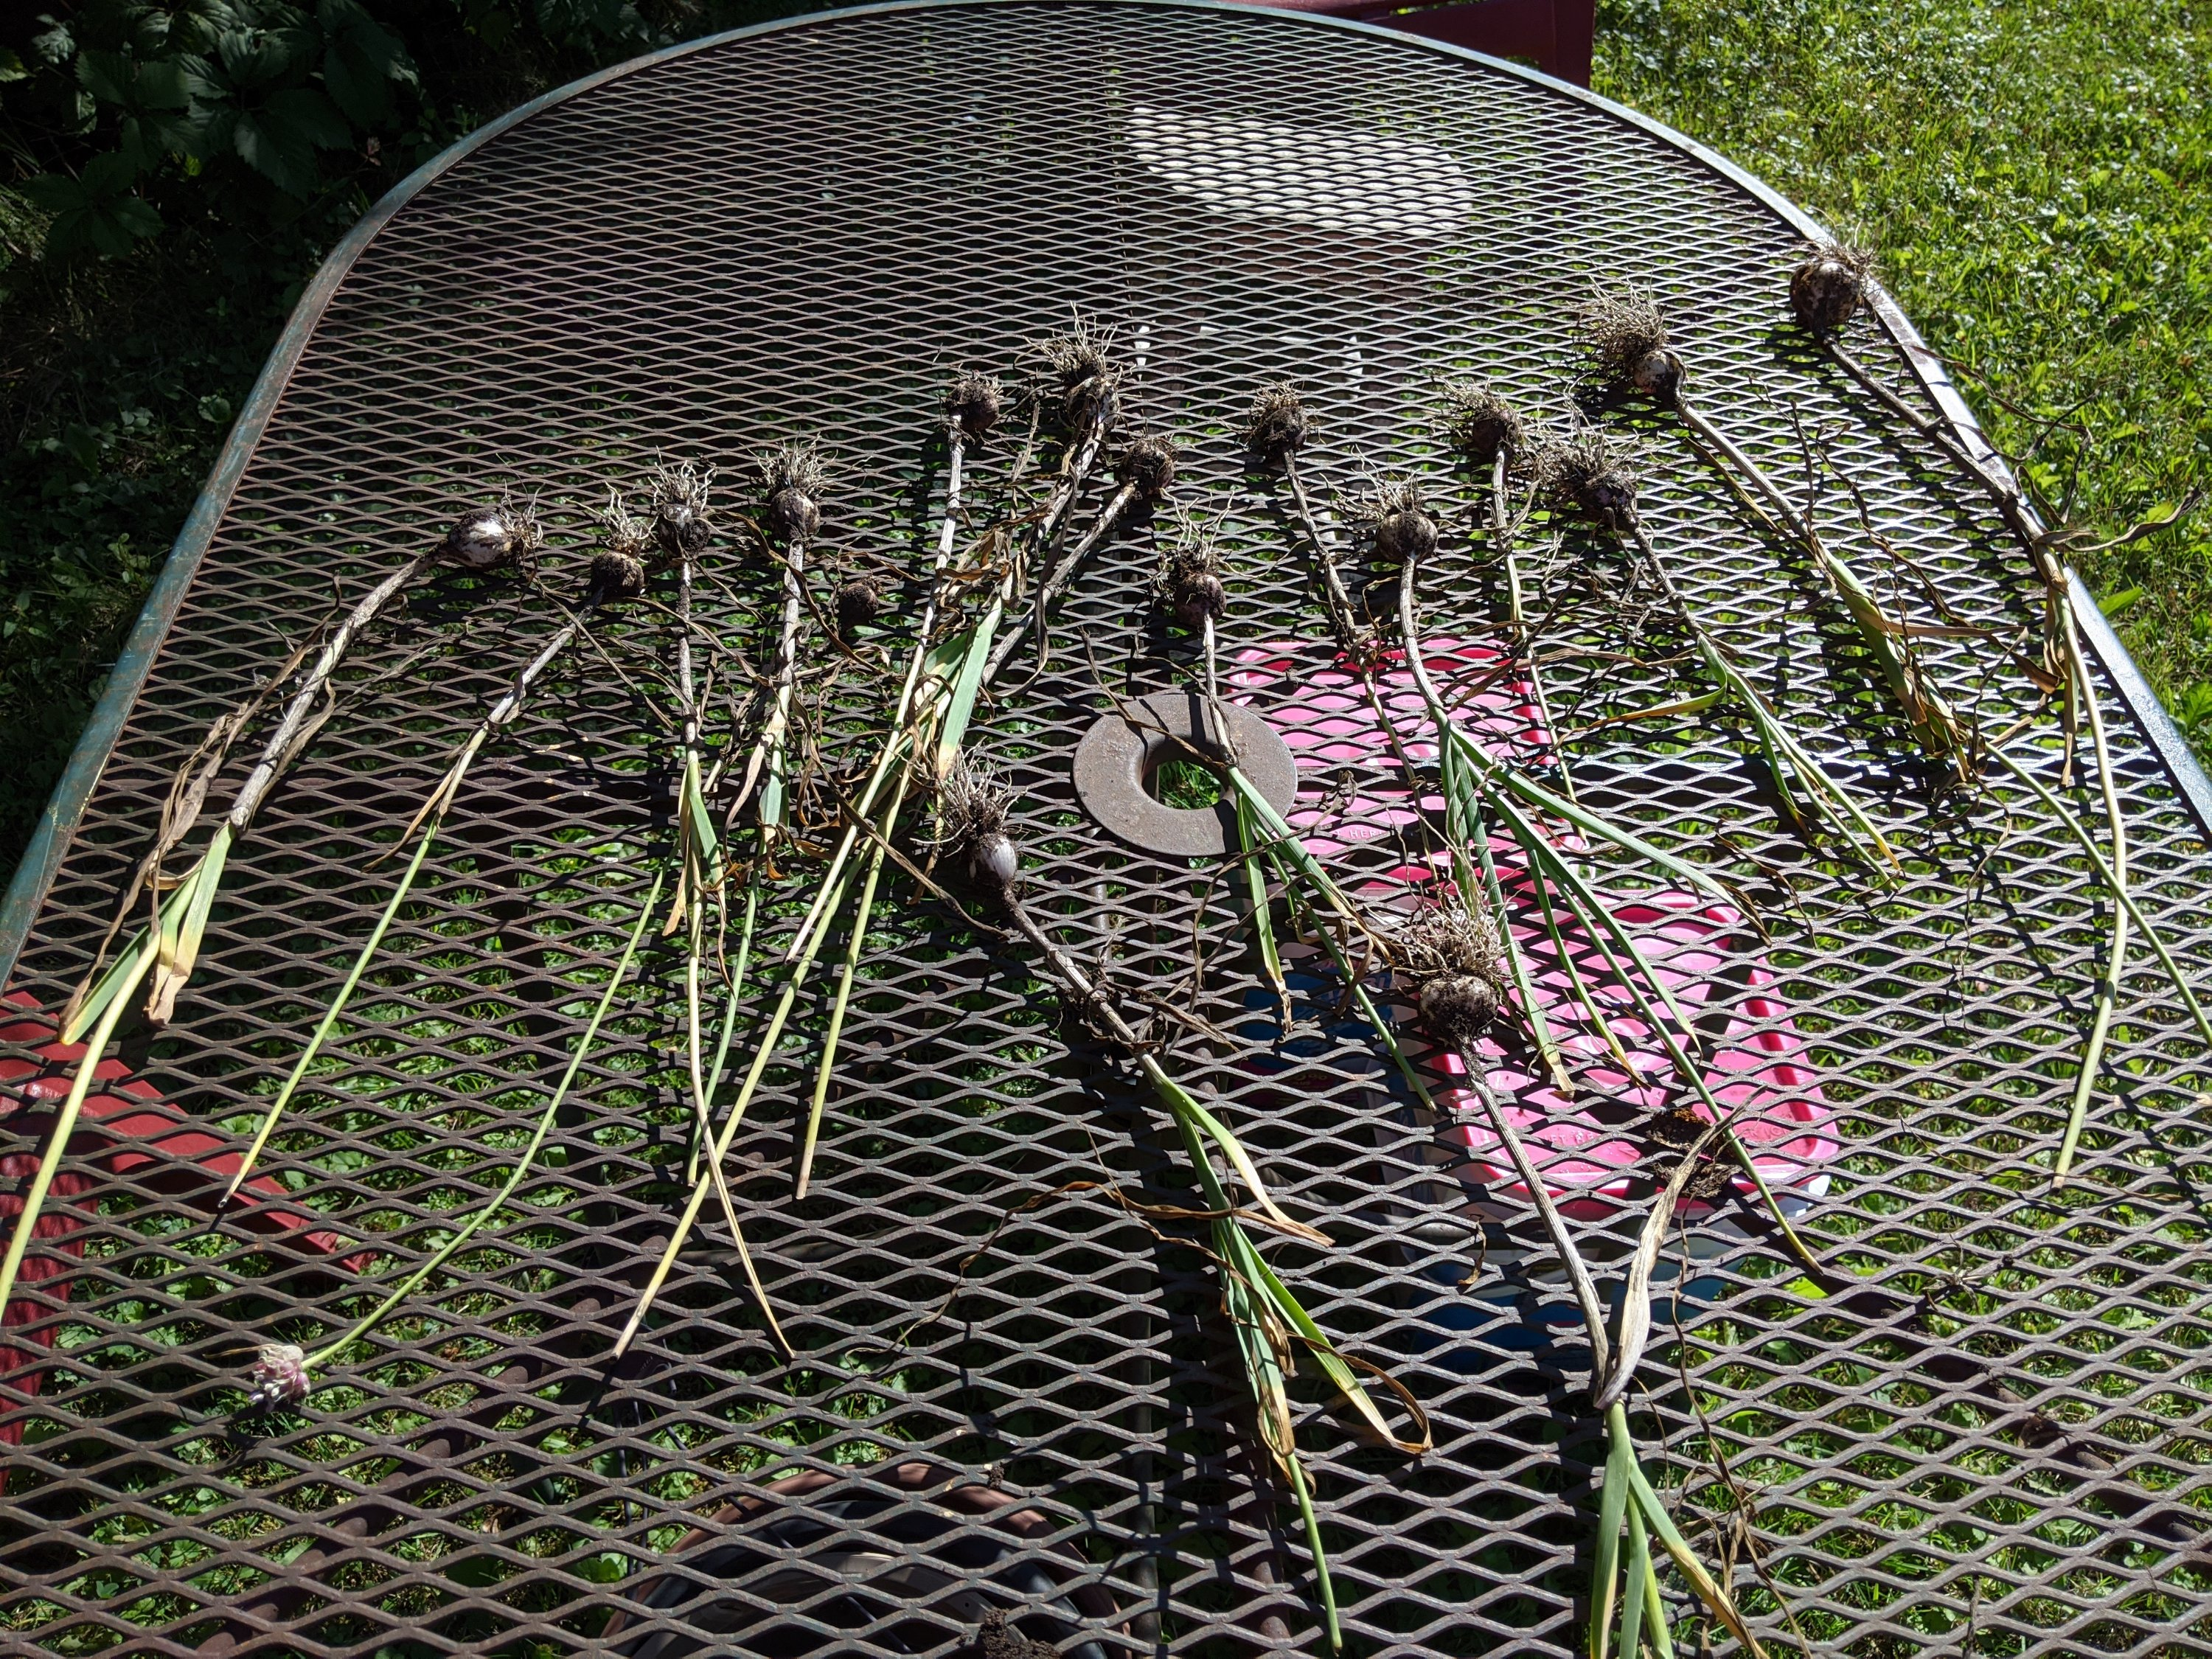 17 stalks of garlic lie on a metal patio table to dry